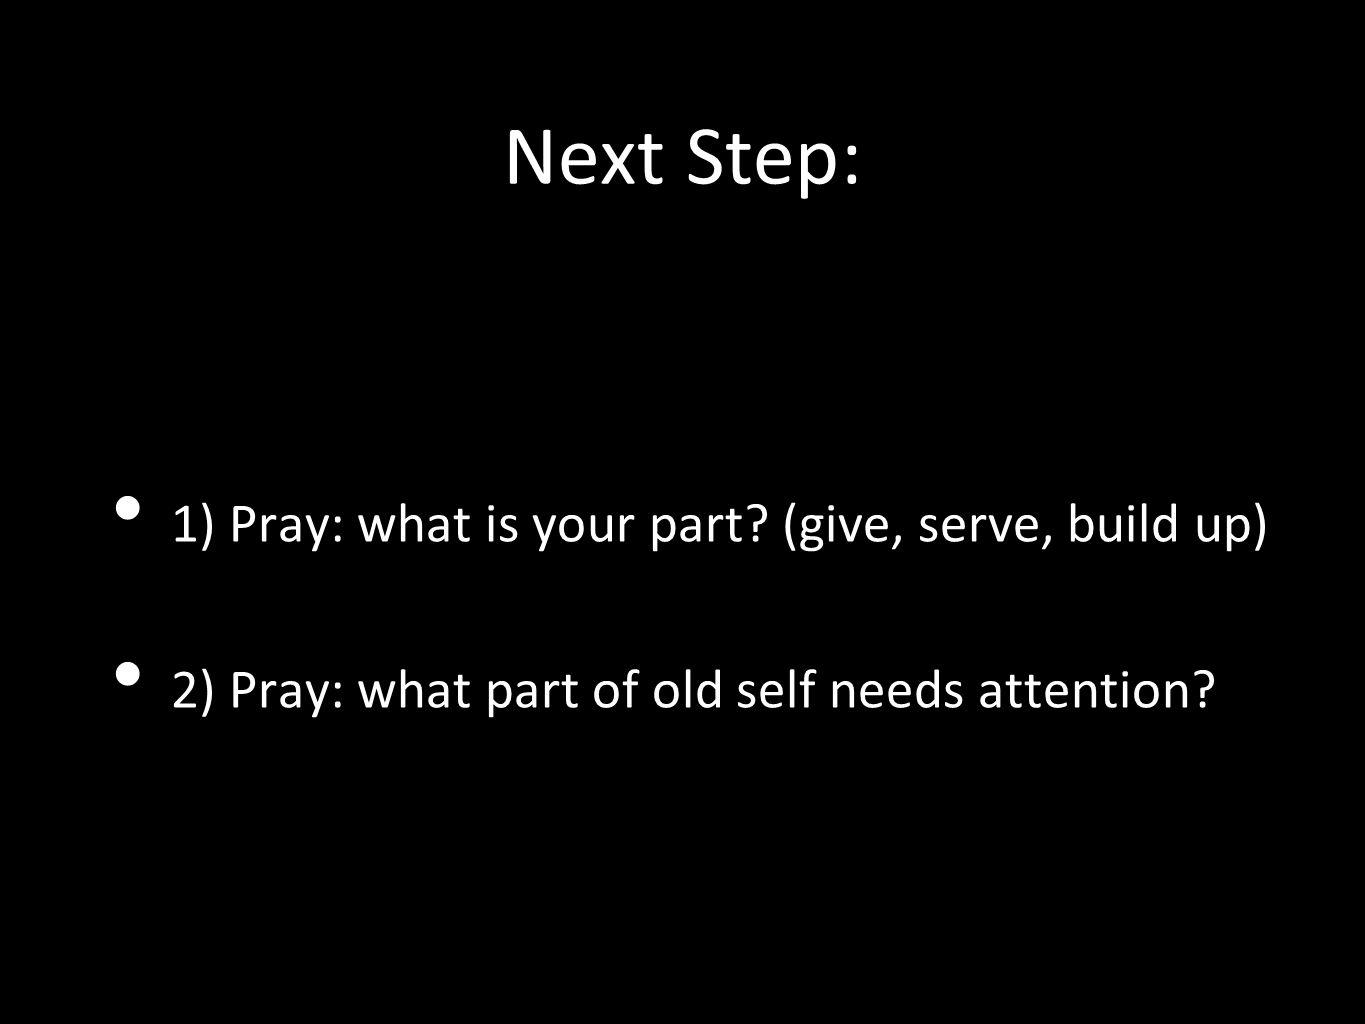 Next Step: 1) Pray: what is your part (give, serve, build up)